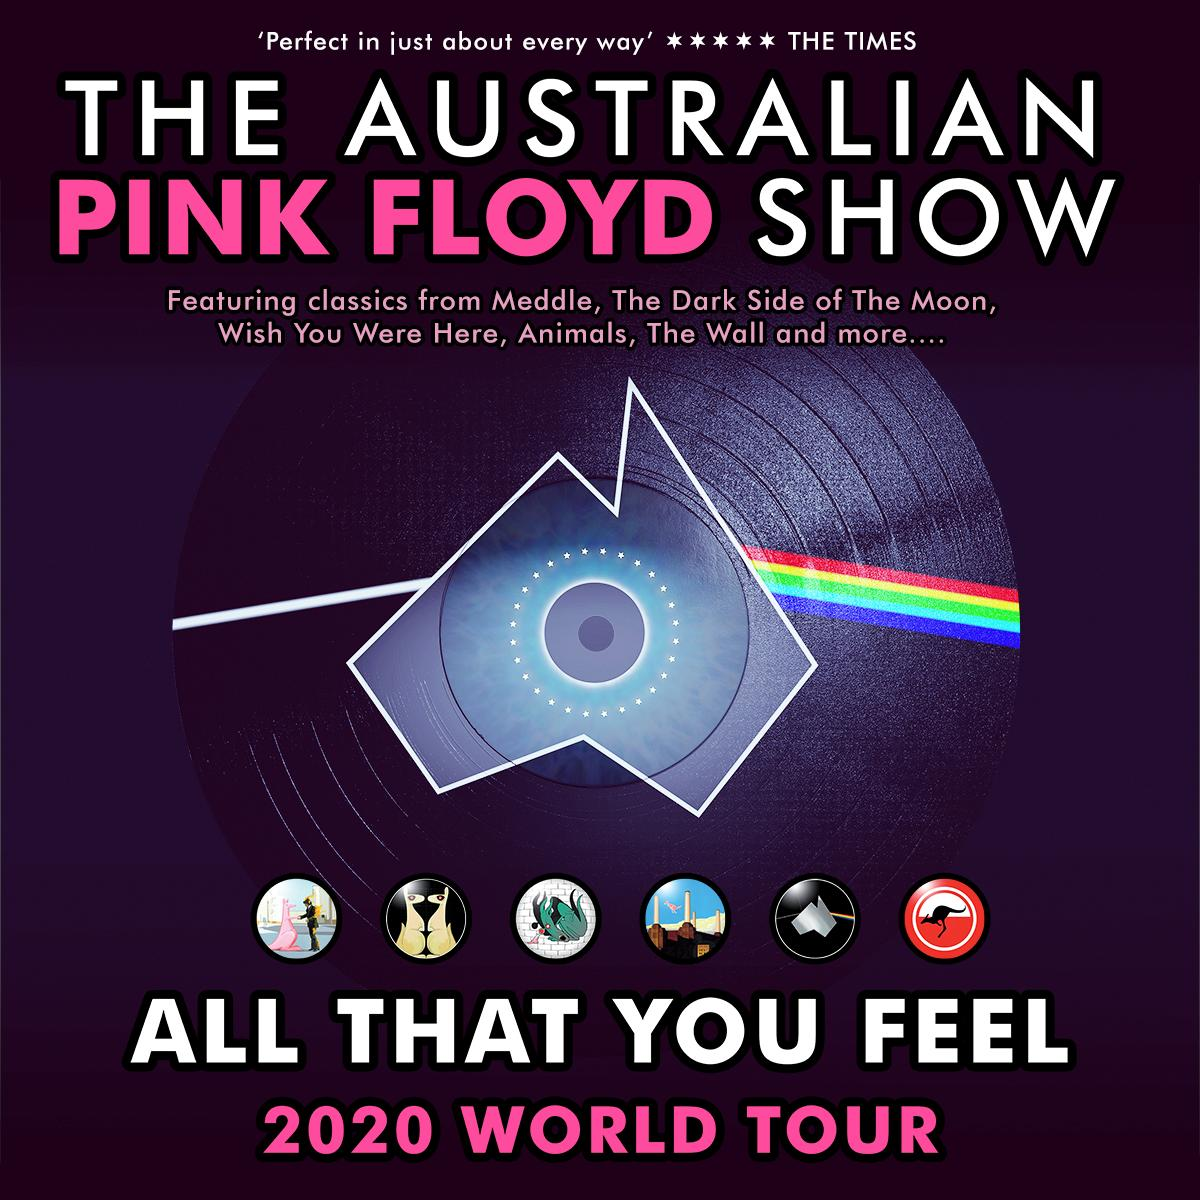 A Perfect Circle Tour 2020.The Australian Pink Floyd Show On Twitter We Ll Be Back At